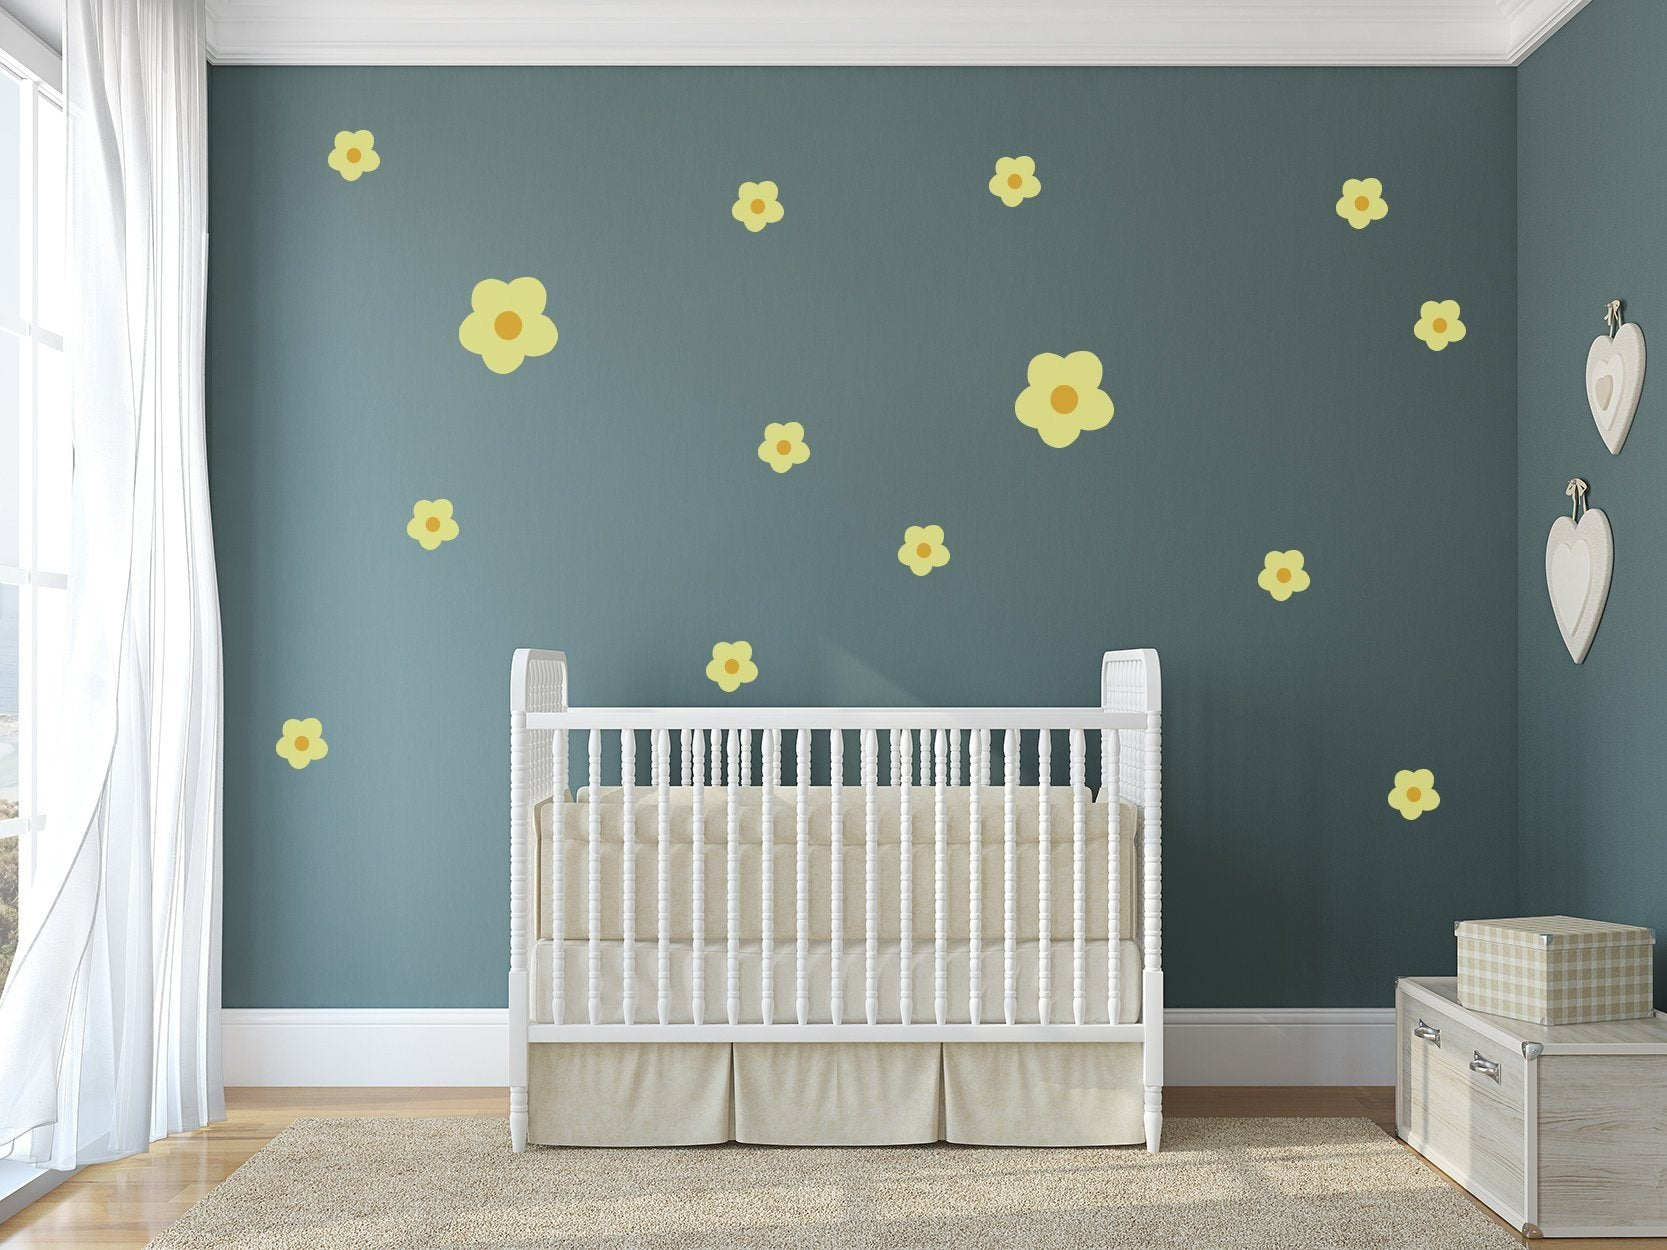 Flower Theme Nursery Wall Art - Cute Nature Flower Decals For Baby Boy And Baby Girl Rooms